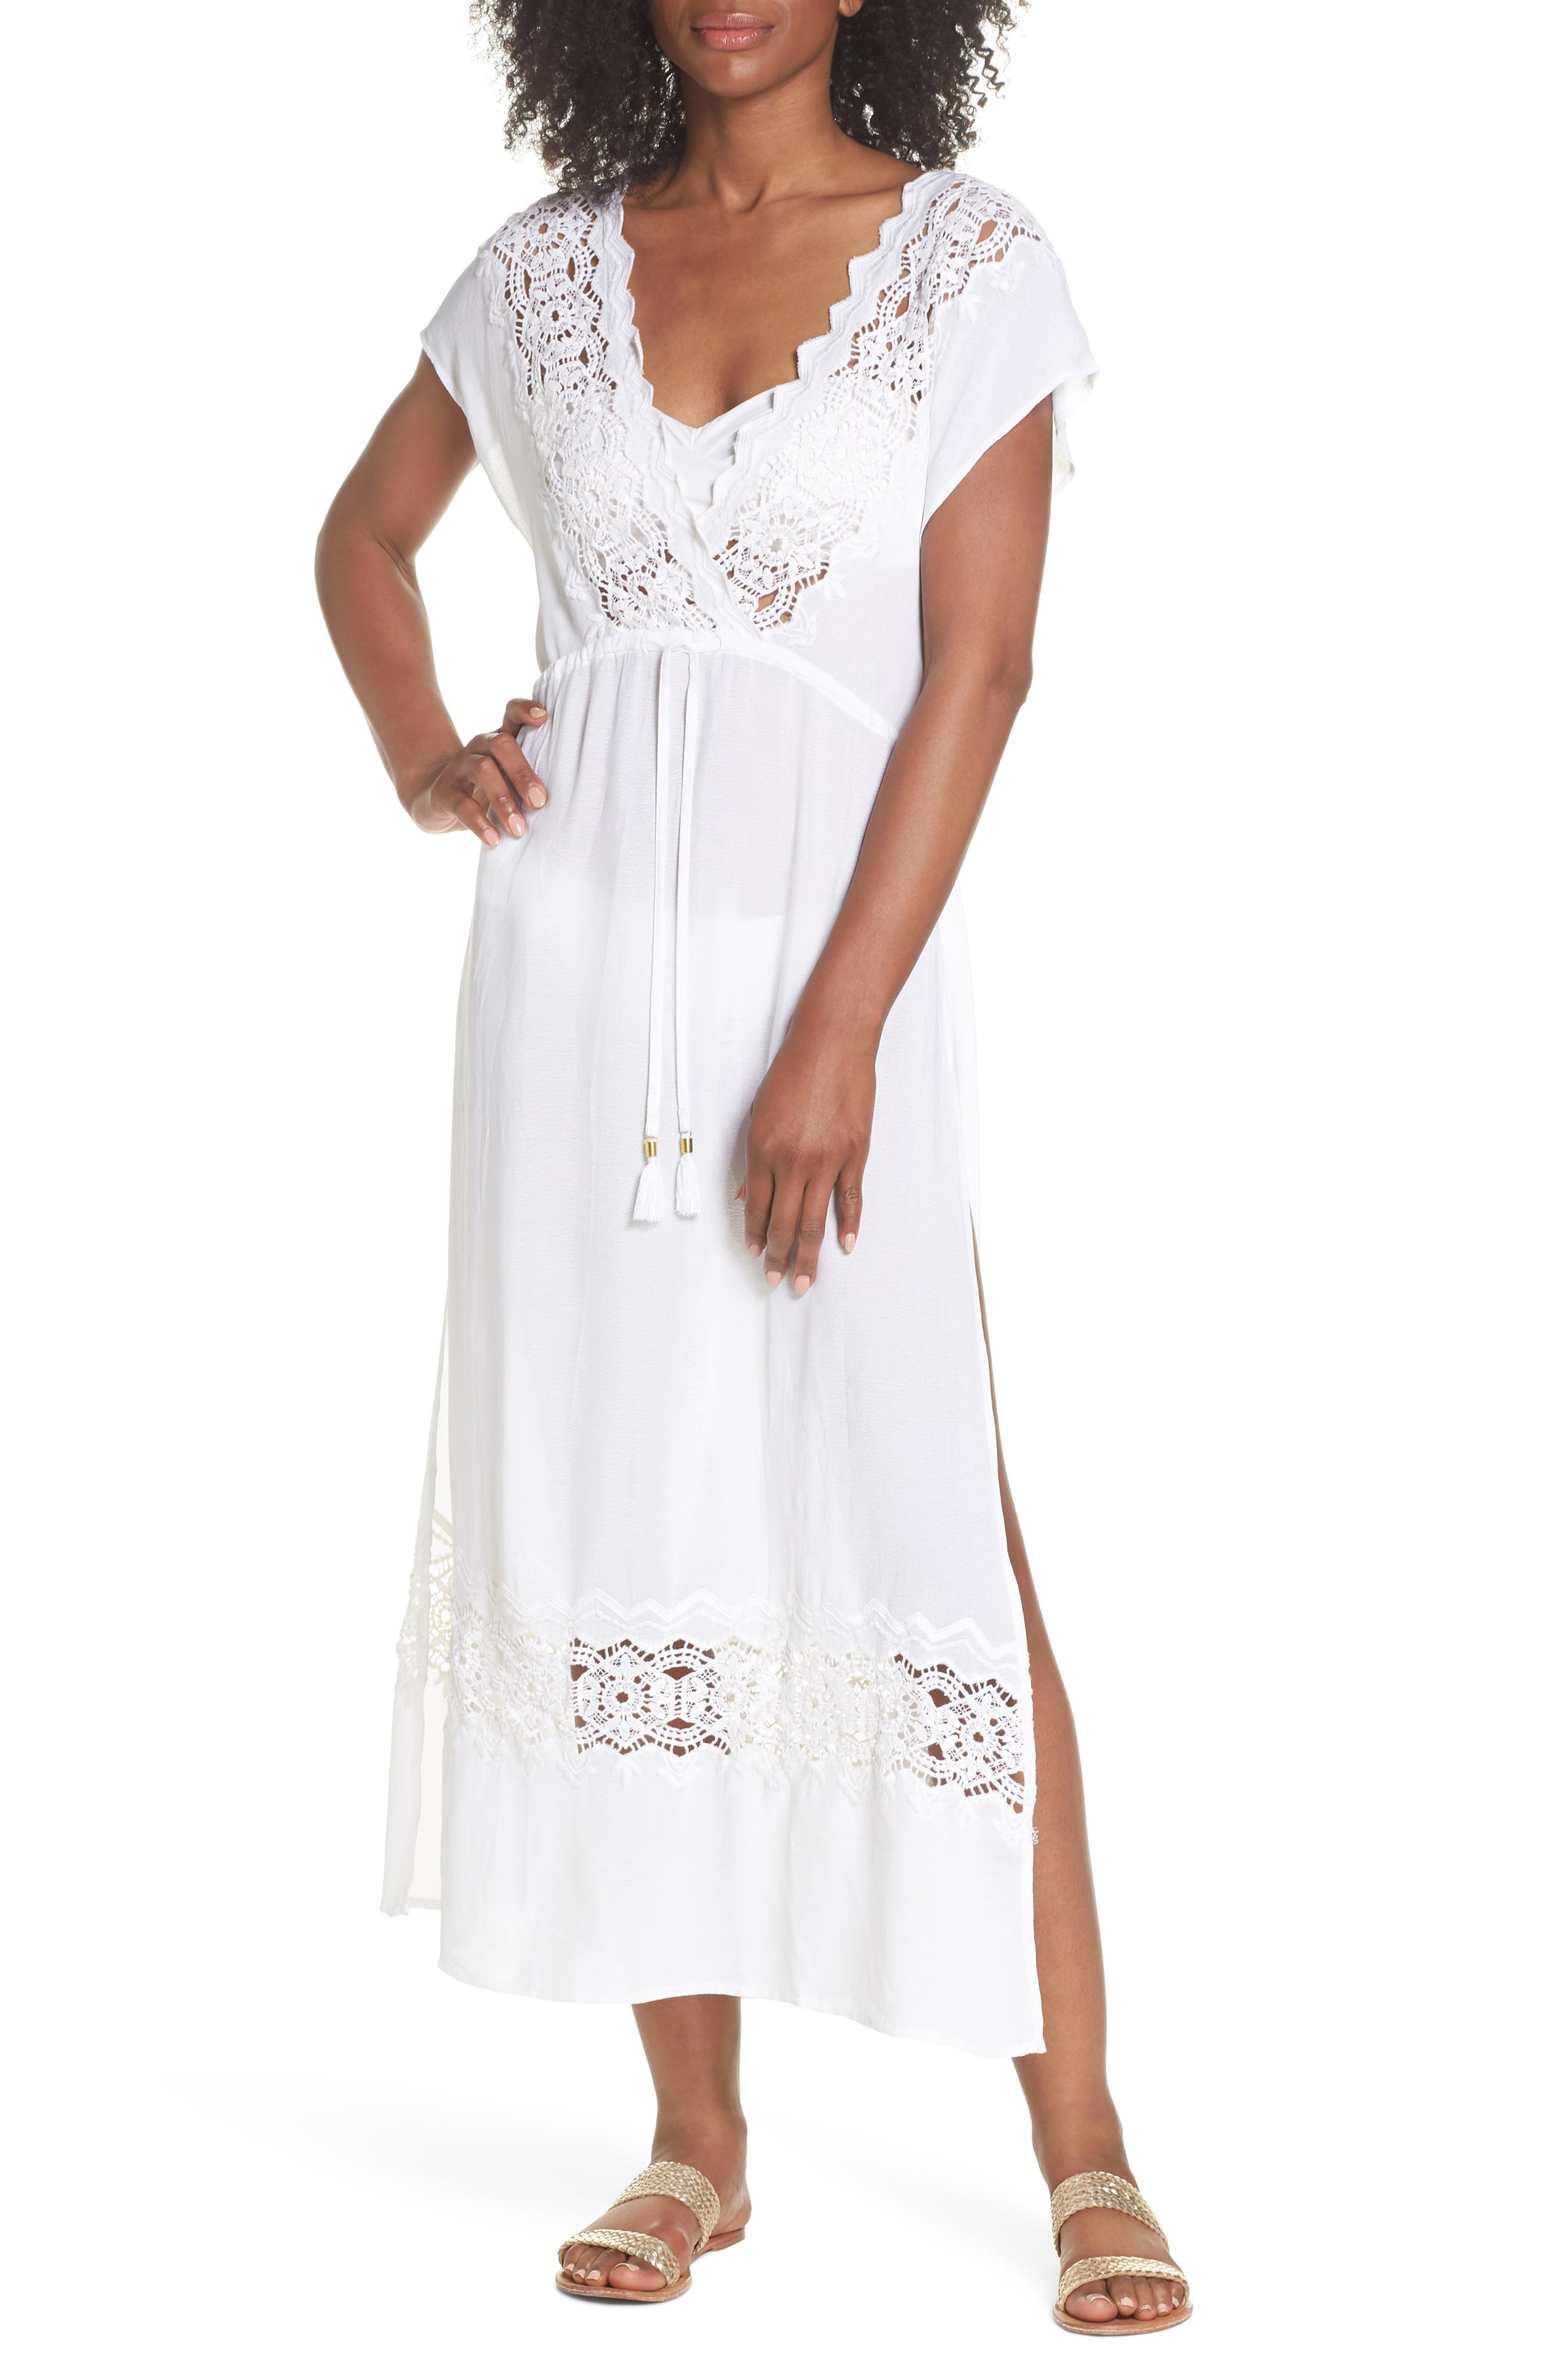 SUNSET COVER-UP DRESS